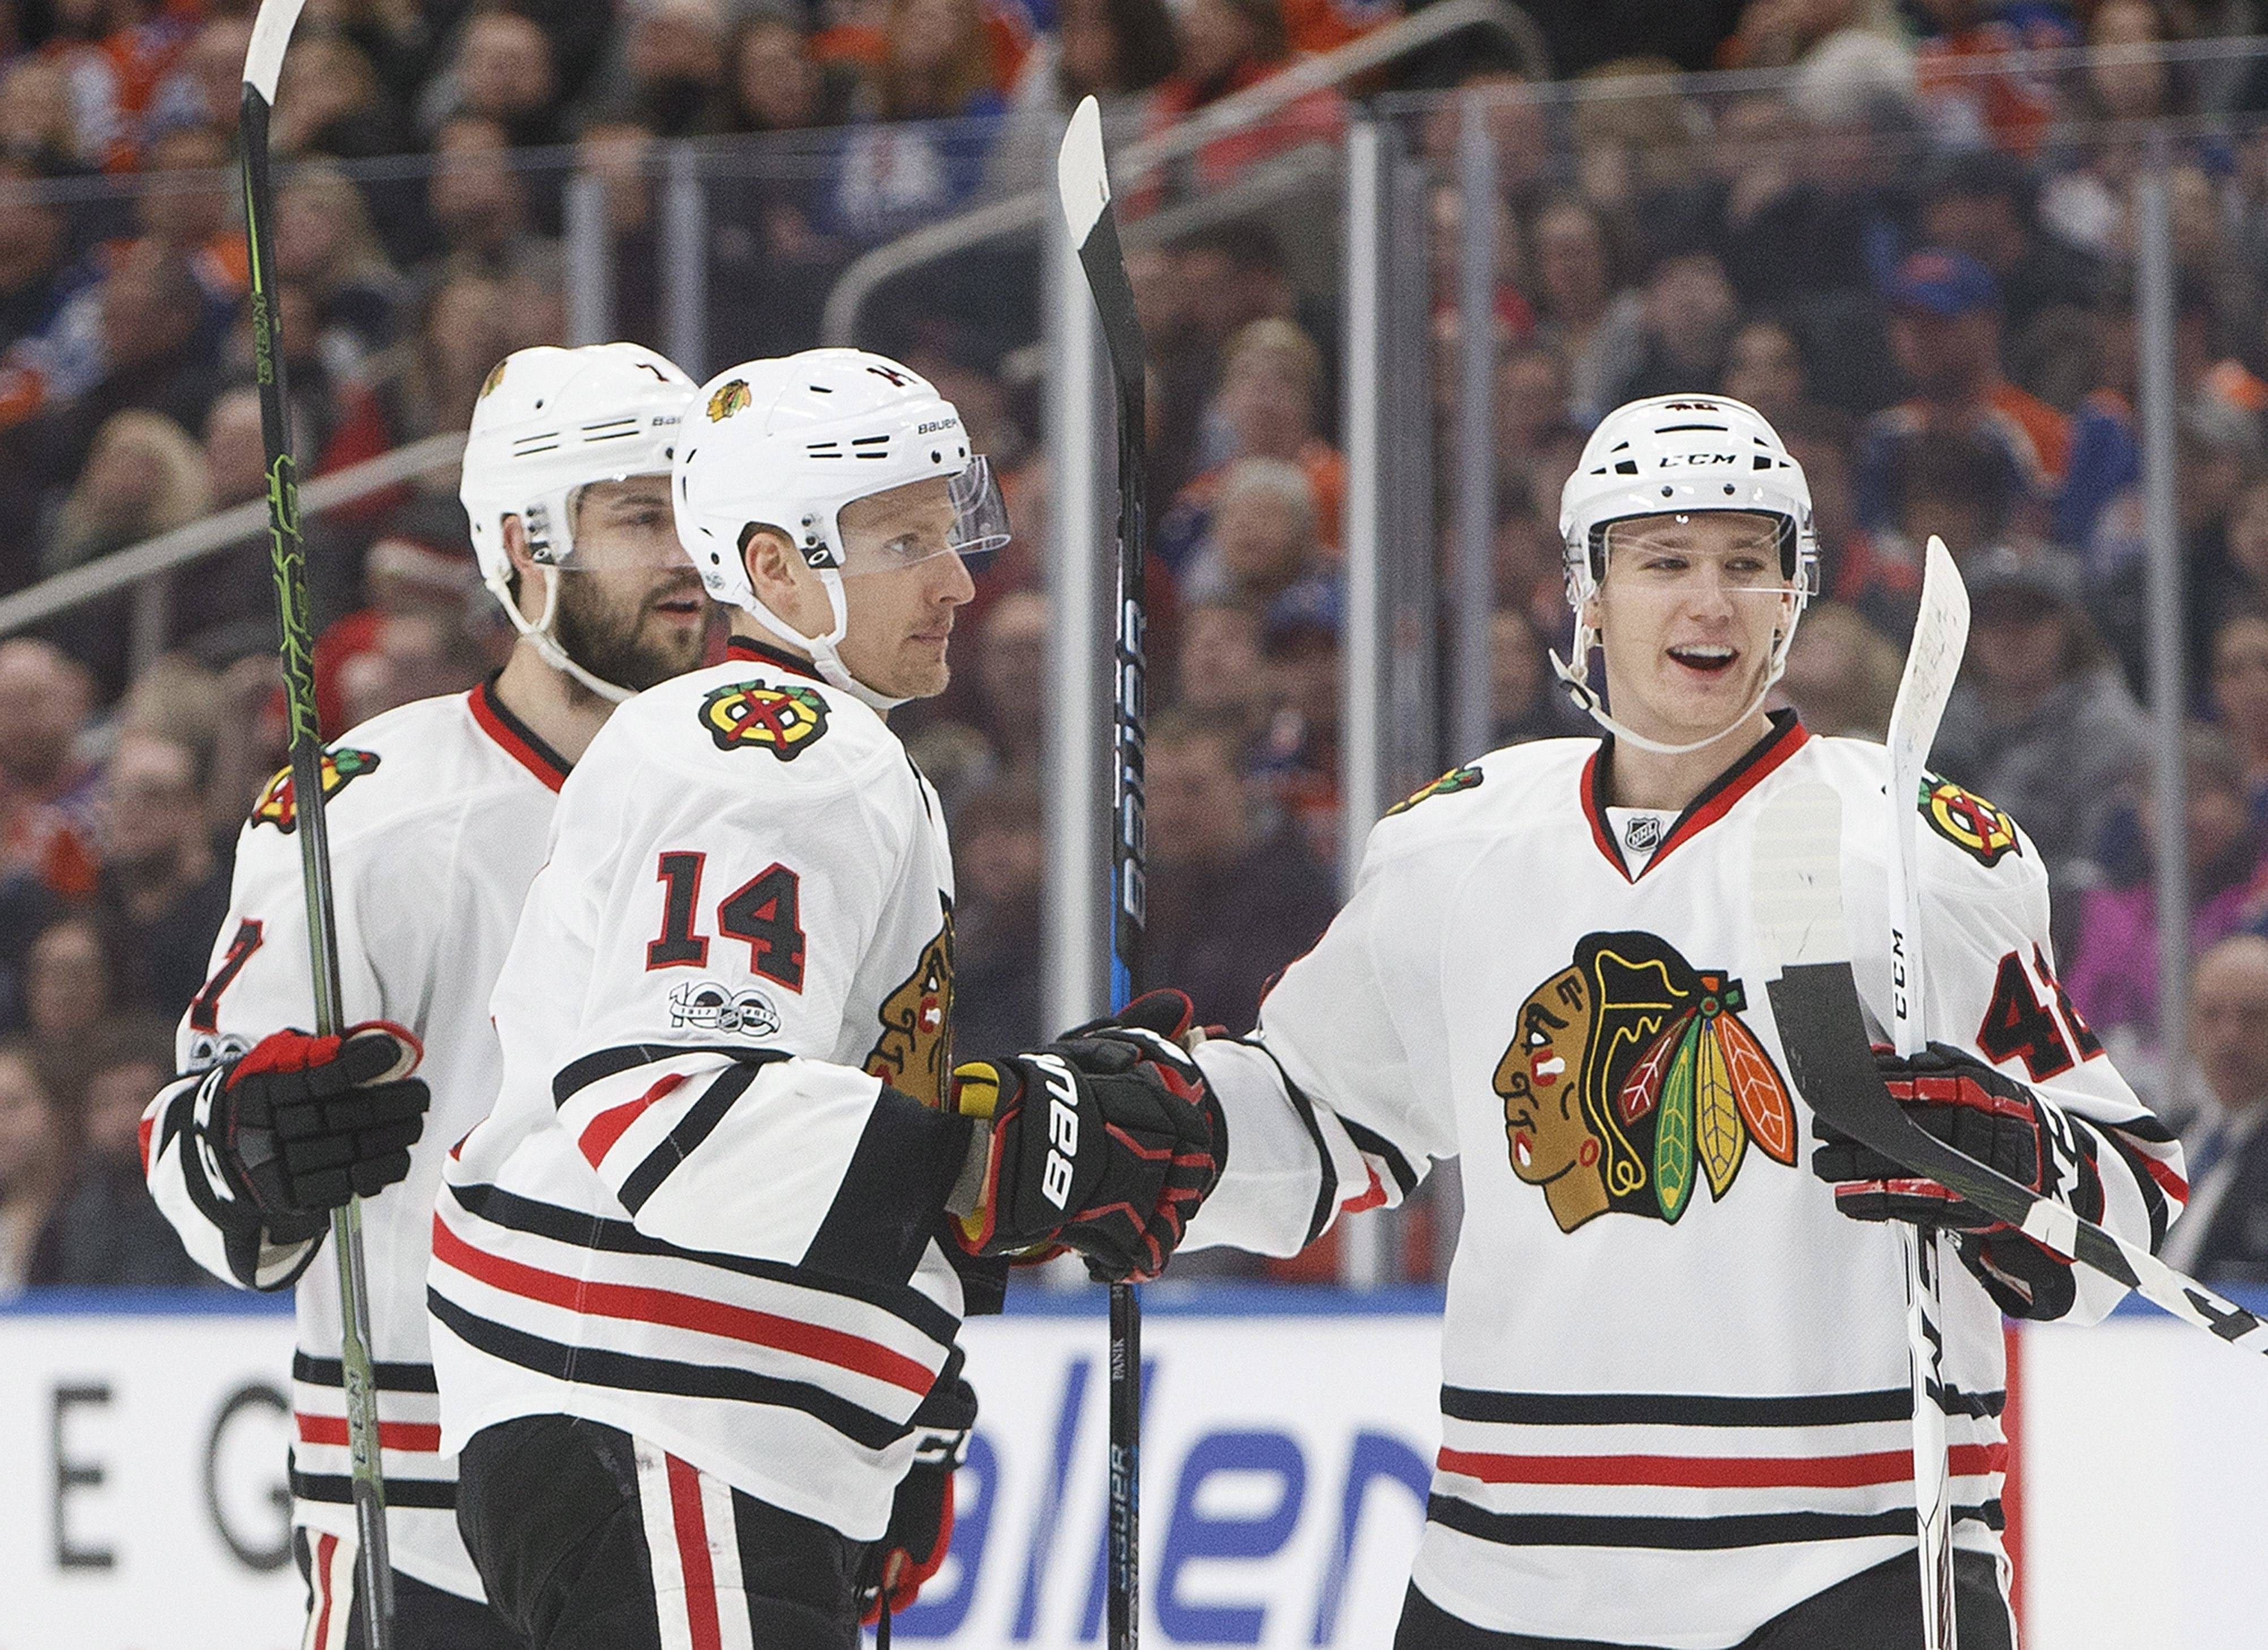 The Blackhawks want to come out of the bye week the same way they went into it. With a win over the Edmonton Oilers on Saturday night.